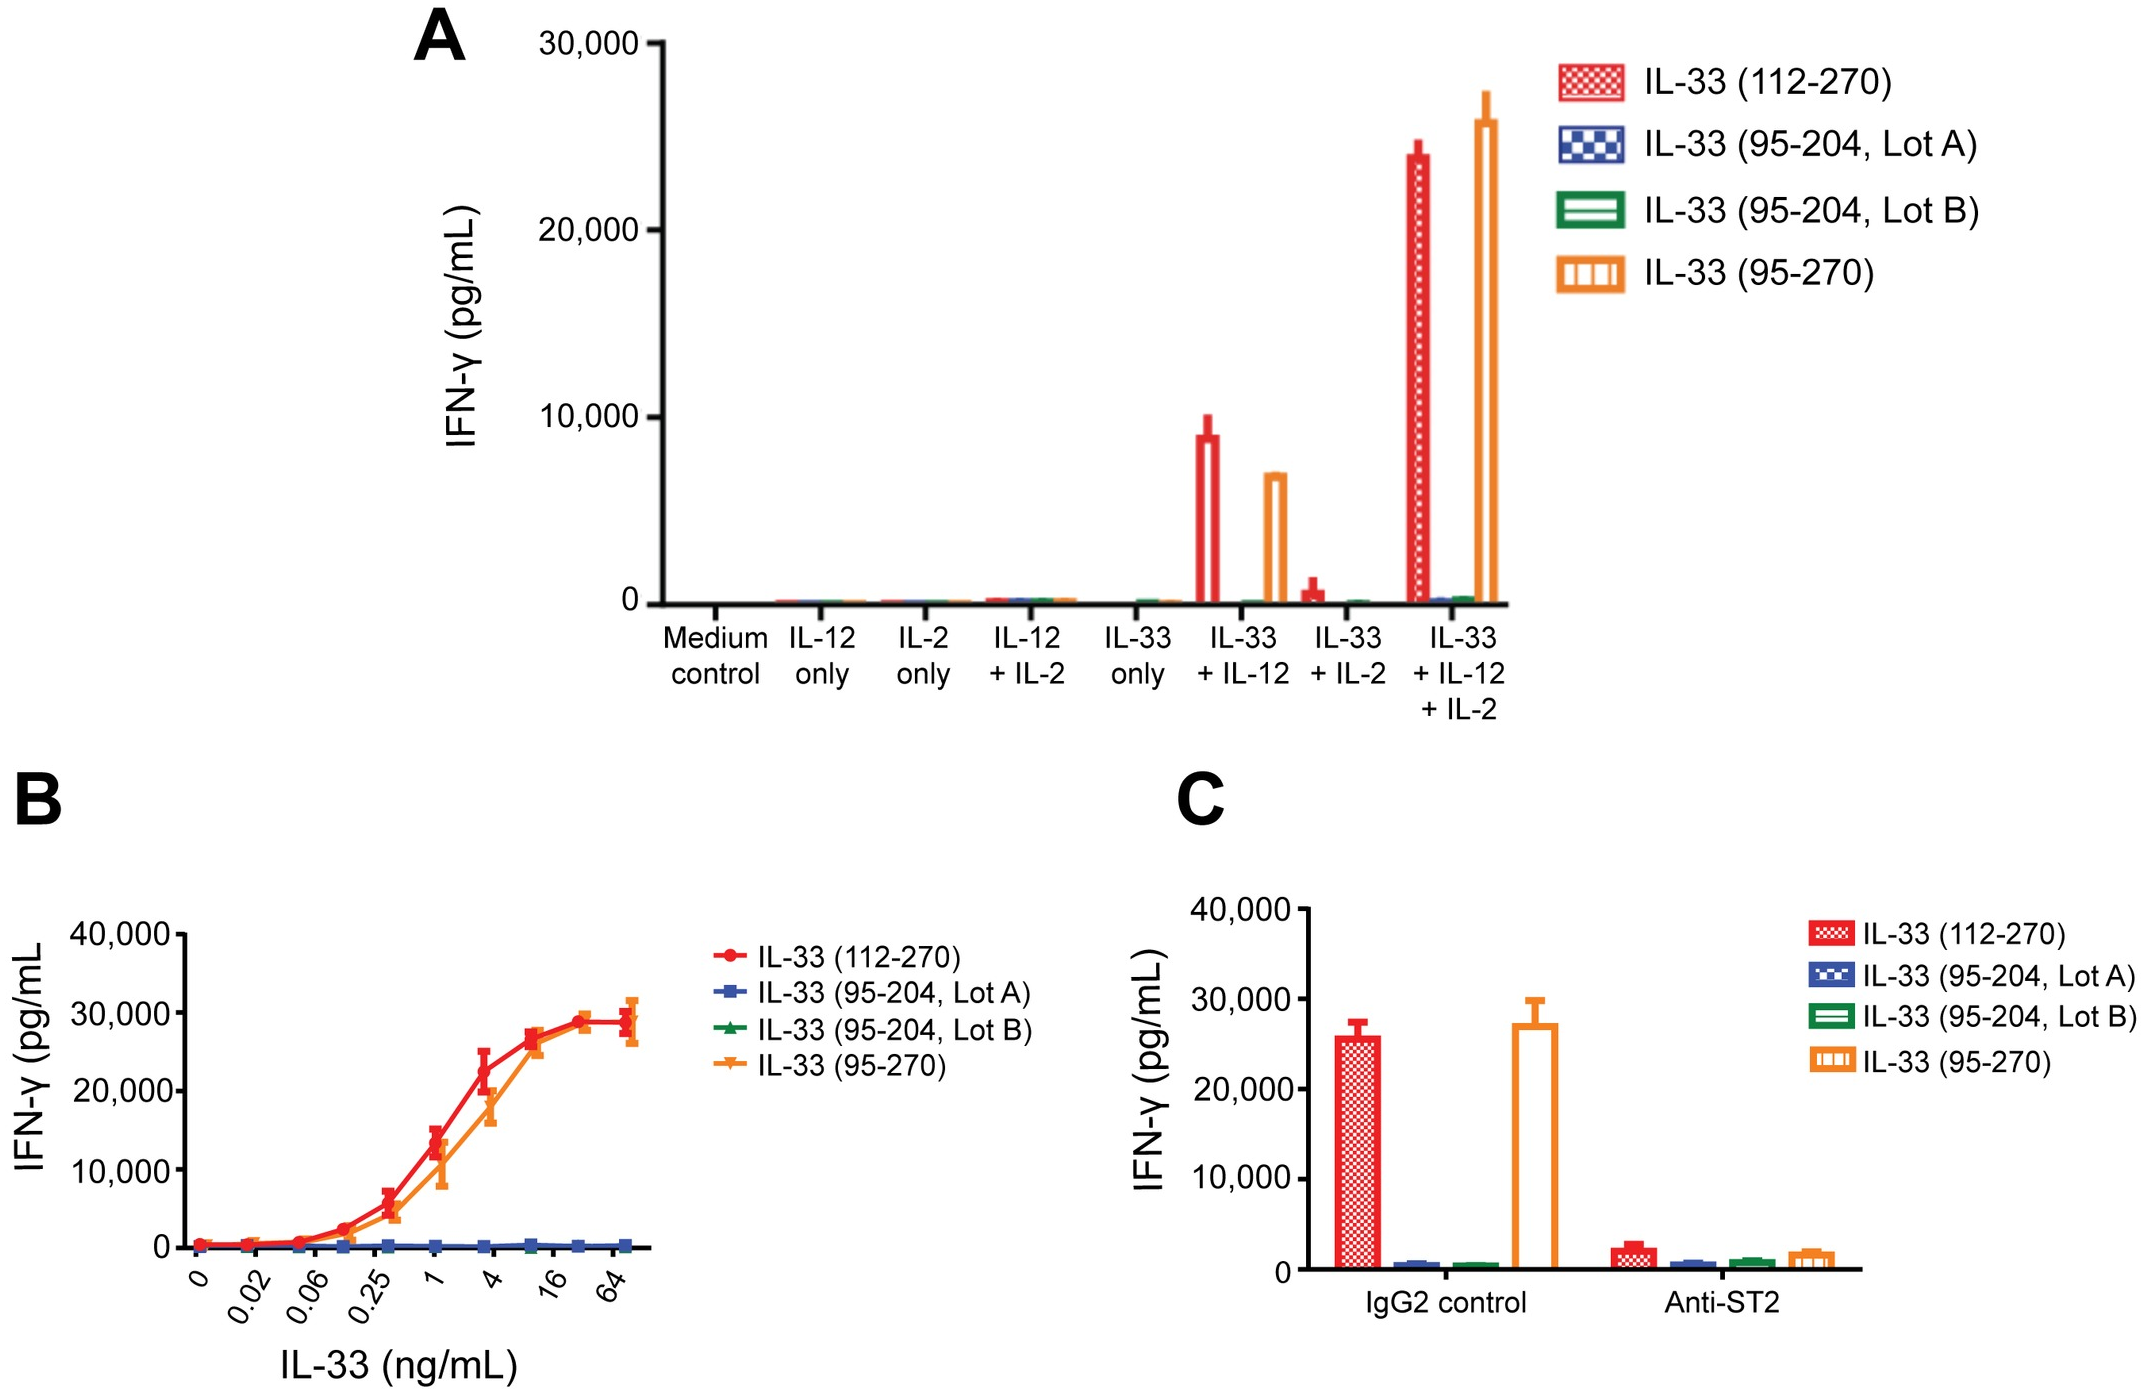 Activity of IL-33 variants in human CD4 T cell bioassay.